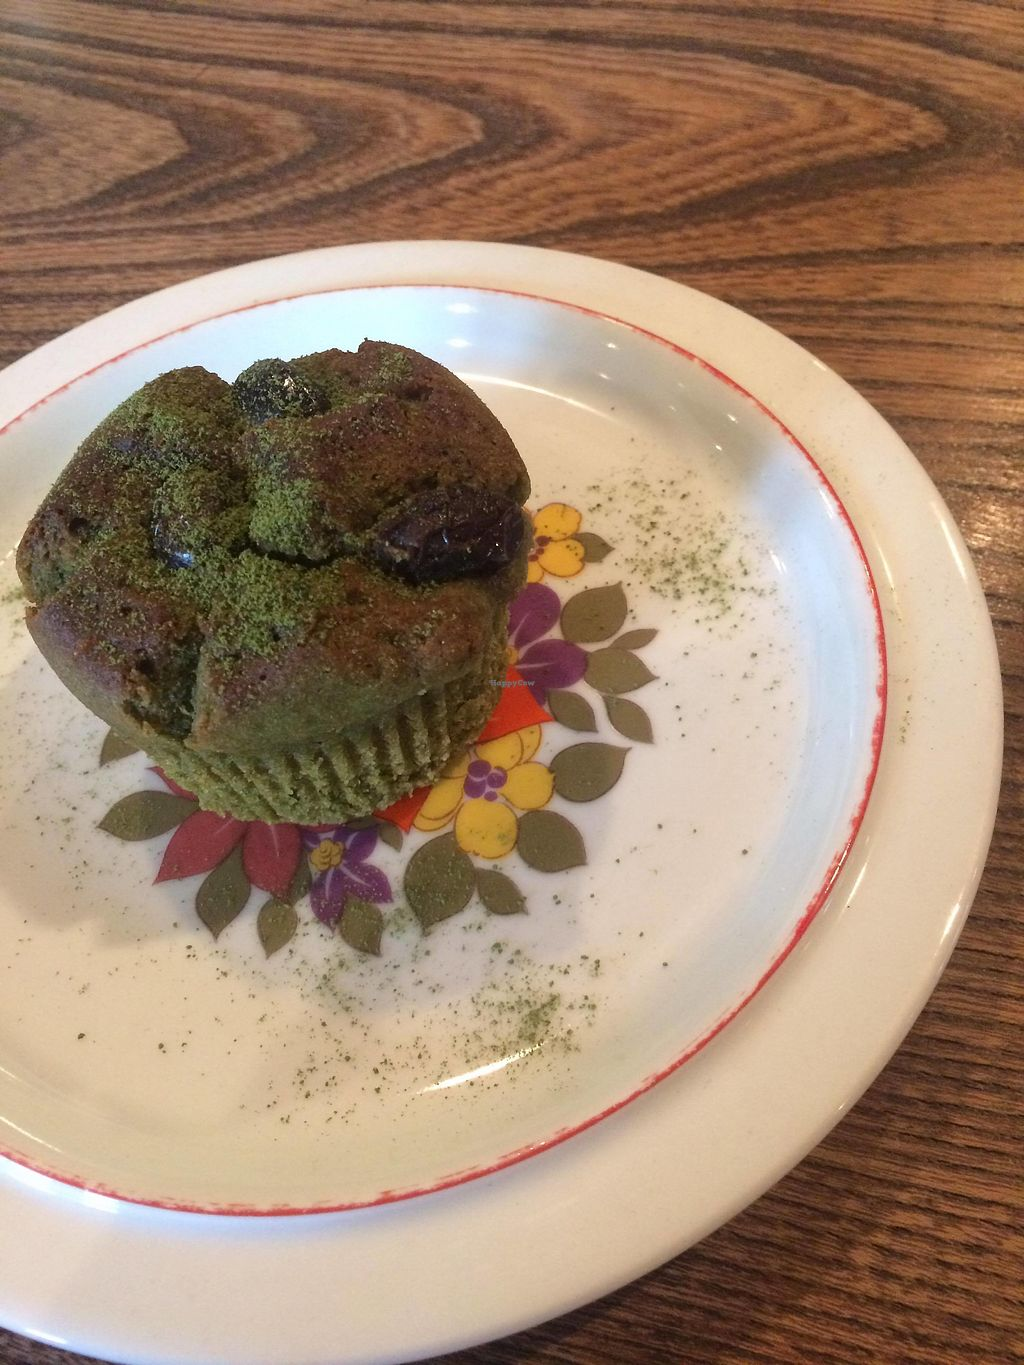 """Photo of Phalam Cafe  by <a href=""""/members/profile/yanina"""">yanina</a> <br/>matcha and azuki beans muffin  <br/> January 19, 2018  - <a href='/contact/abuse/image/55894/348227'>Report</a>"""